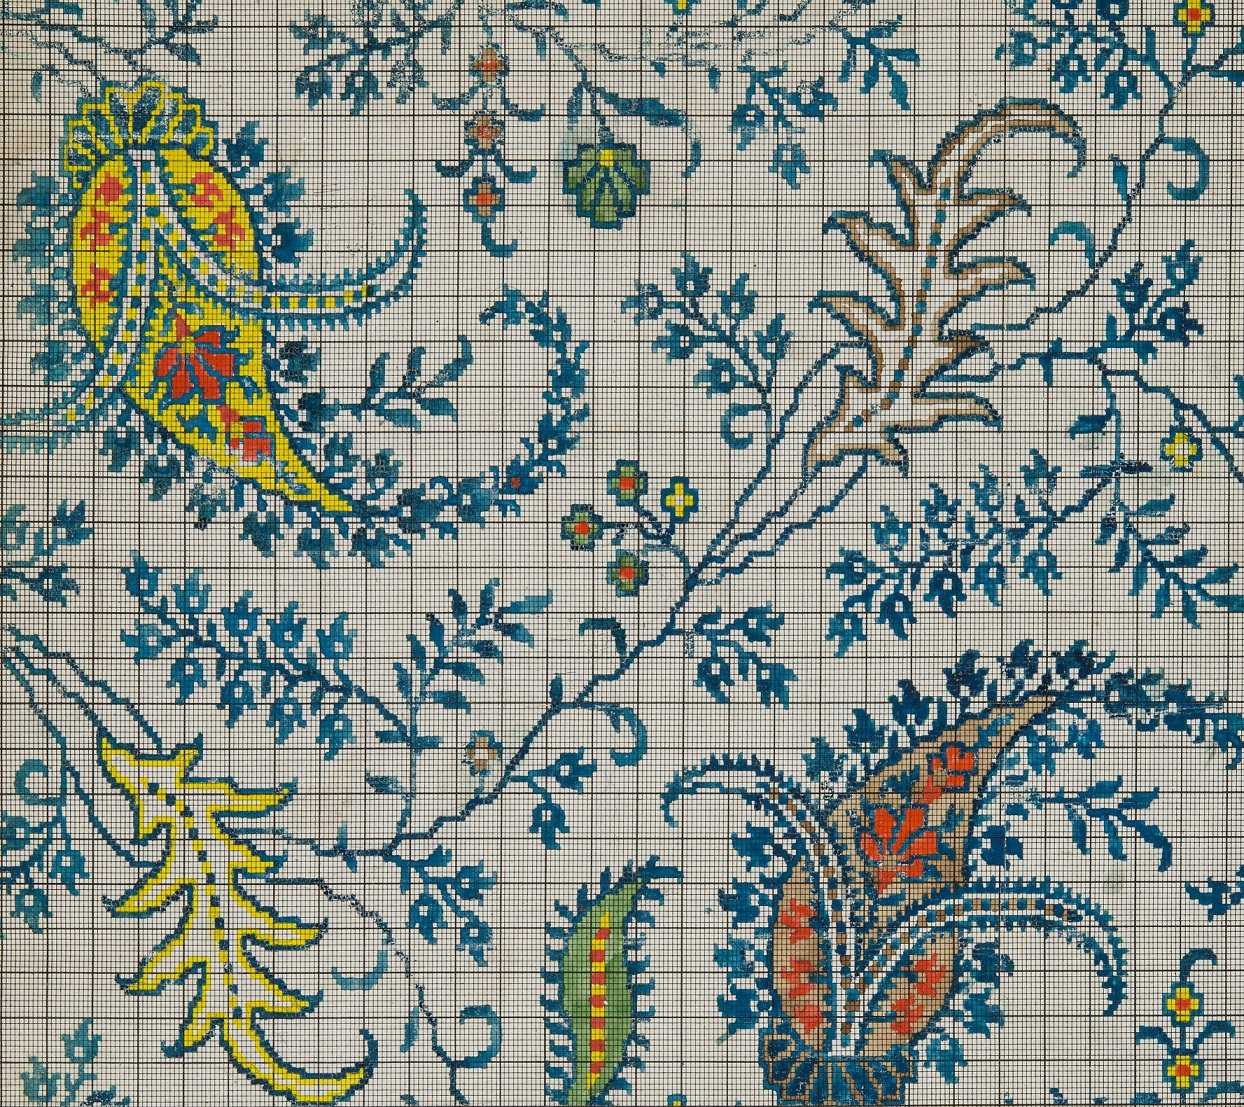 Close up view of squared paper showing a blue, red and yellowPaisley pattern